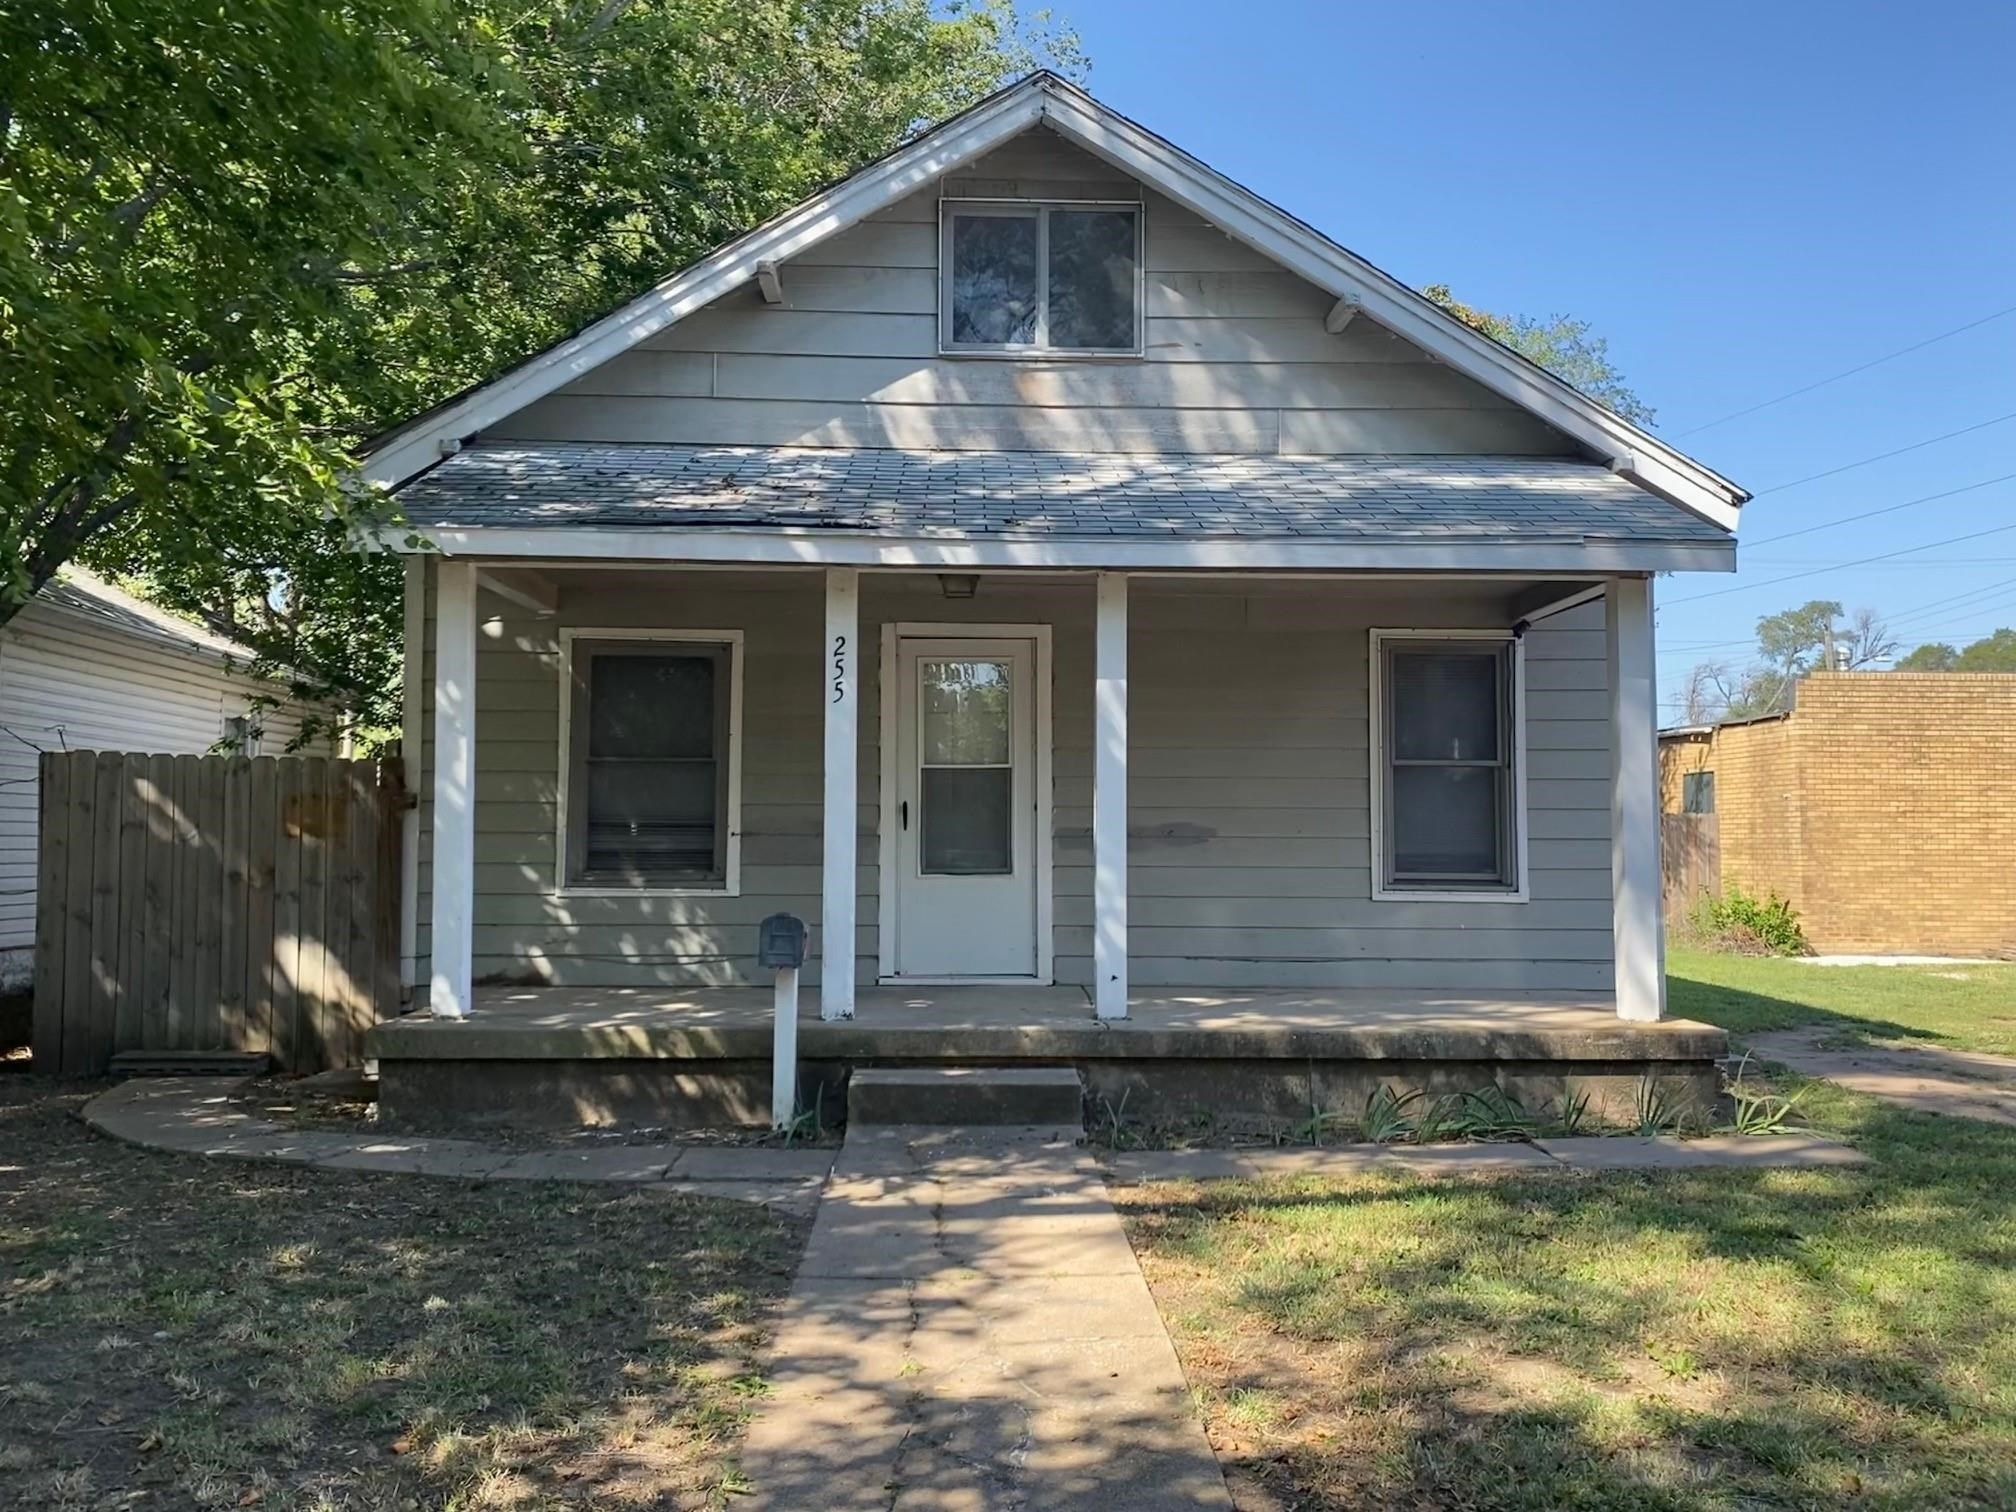 This charming bungalow in conveniently located in the Historic Delano district where restaurants, ba